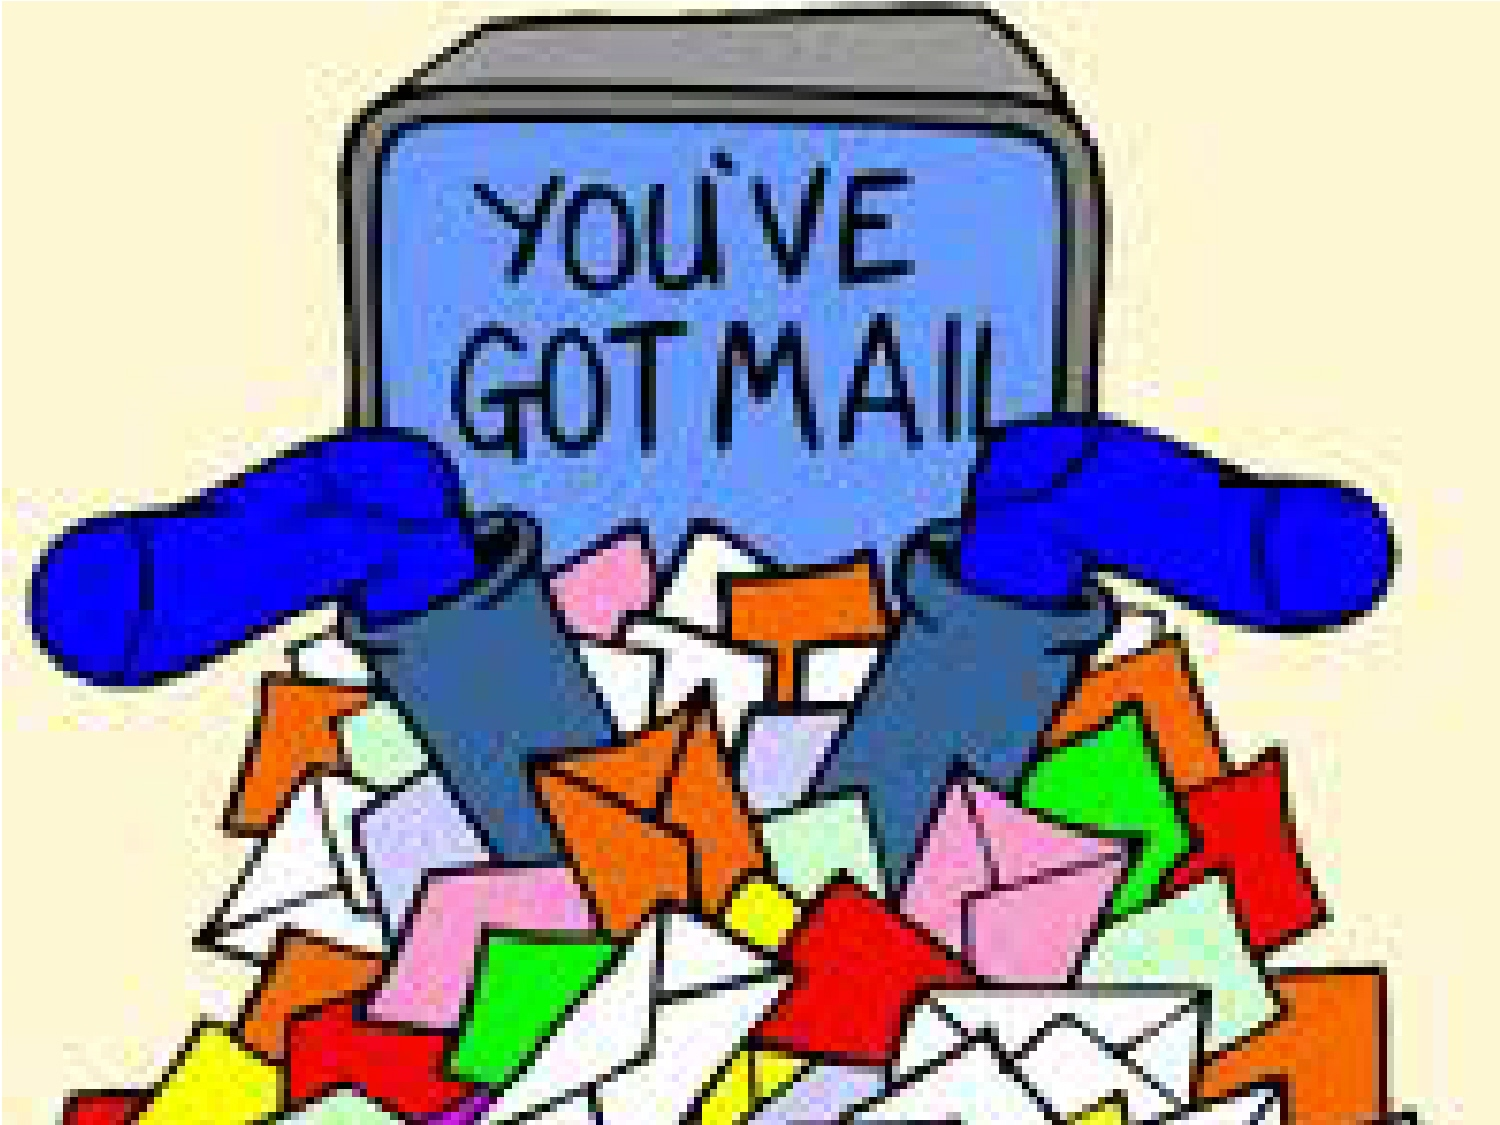 i love you all but i u2019m buried in email serendipity seeking intelligent life on earth teepee clip art free teepee clip art png